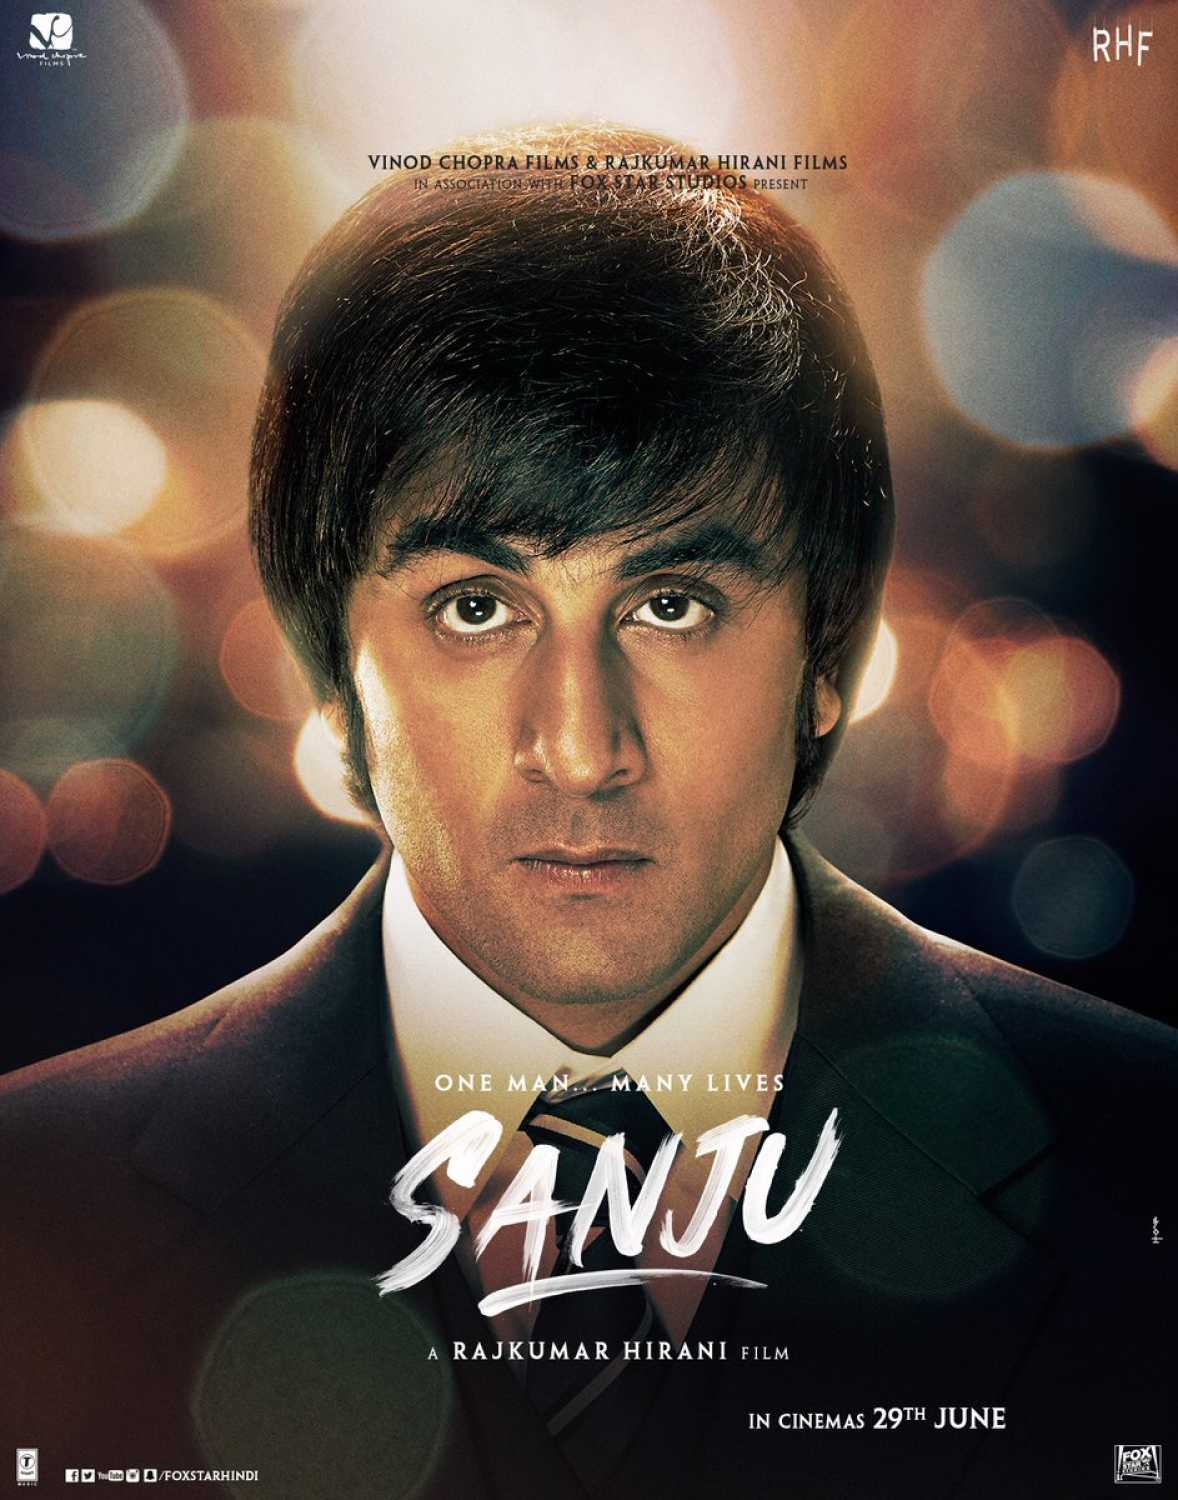 Sanju (2018) Hindi New 1/3 Pre-DVDRip x264 1.45GB Multisubs Best Print